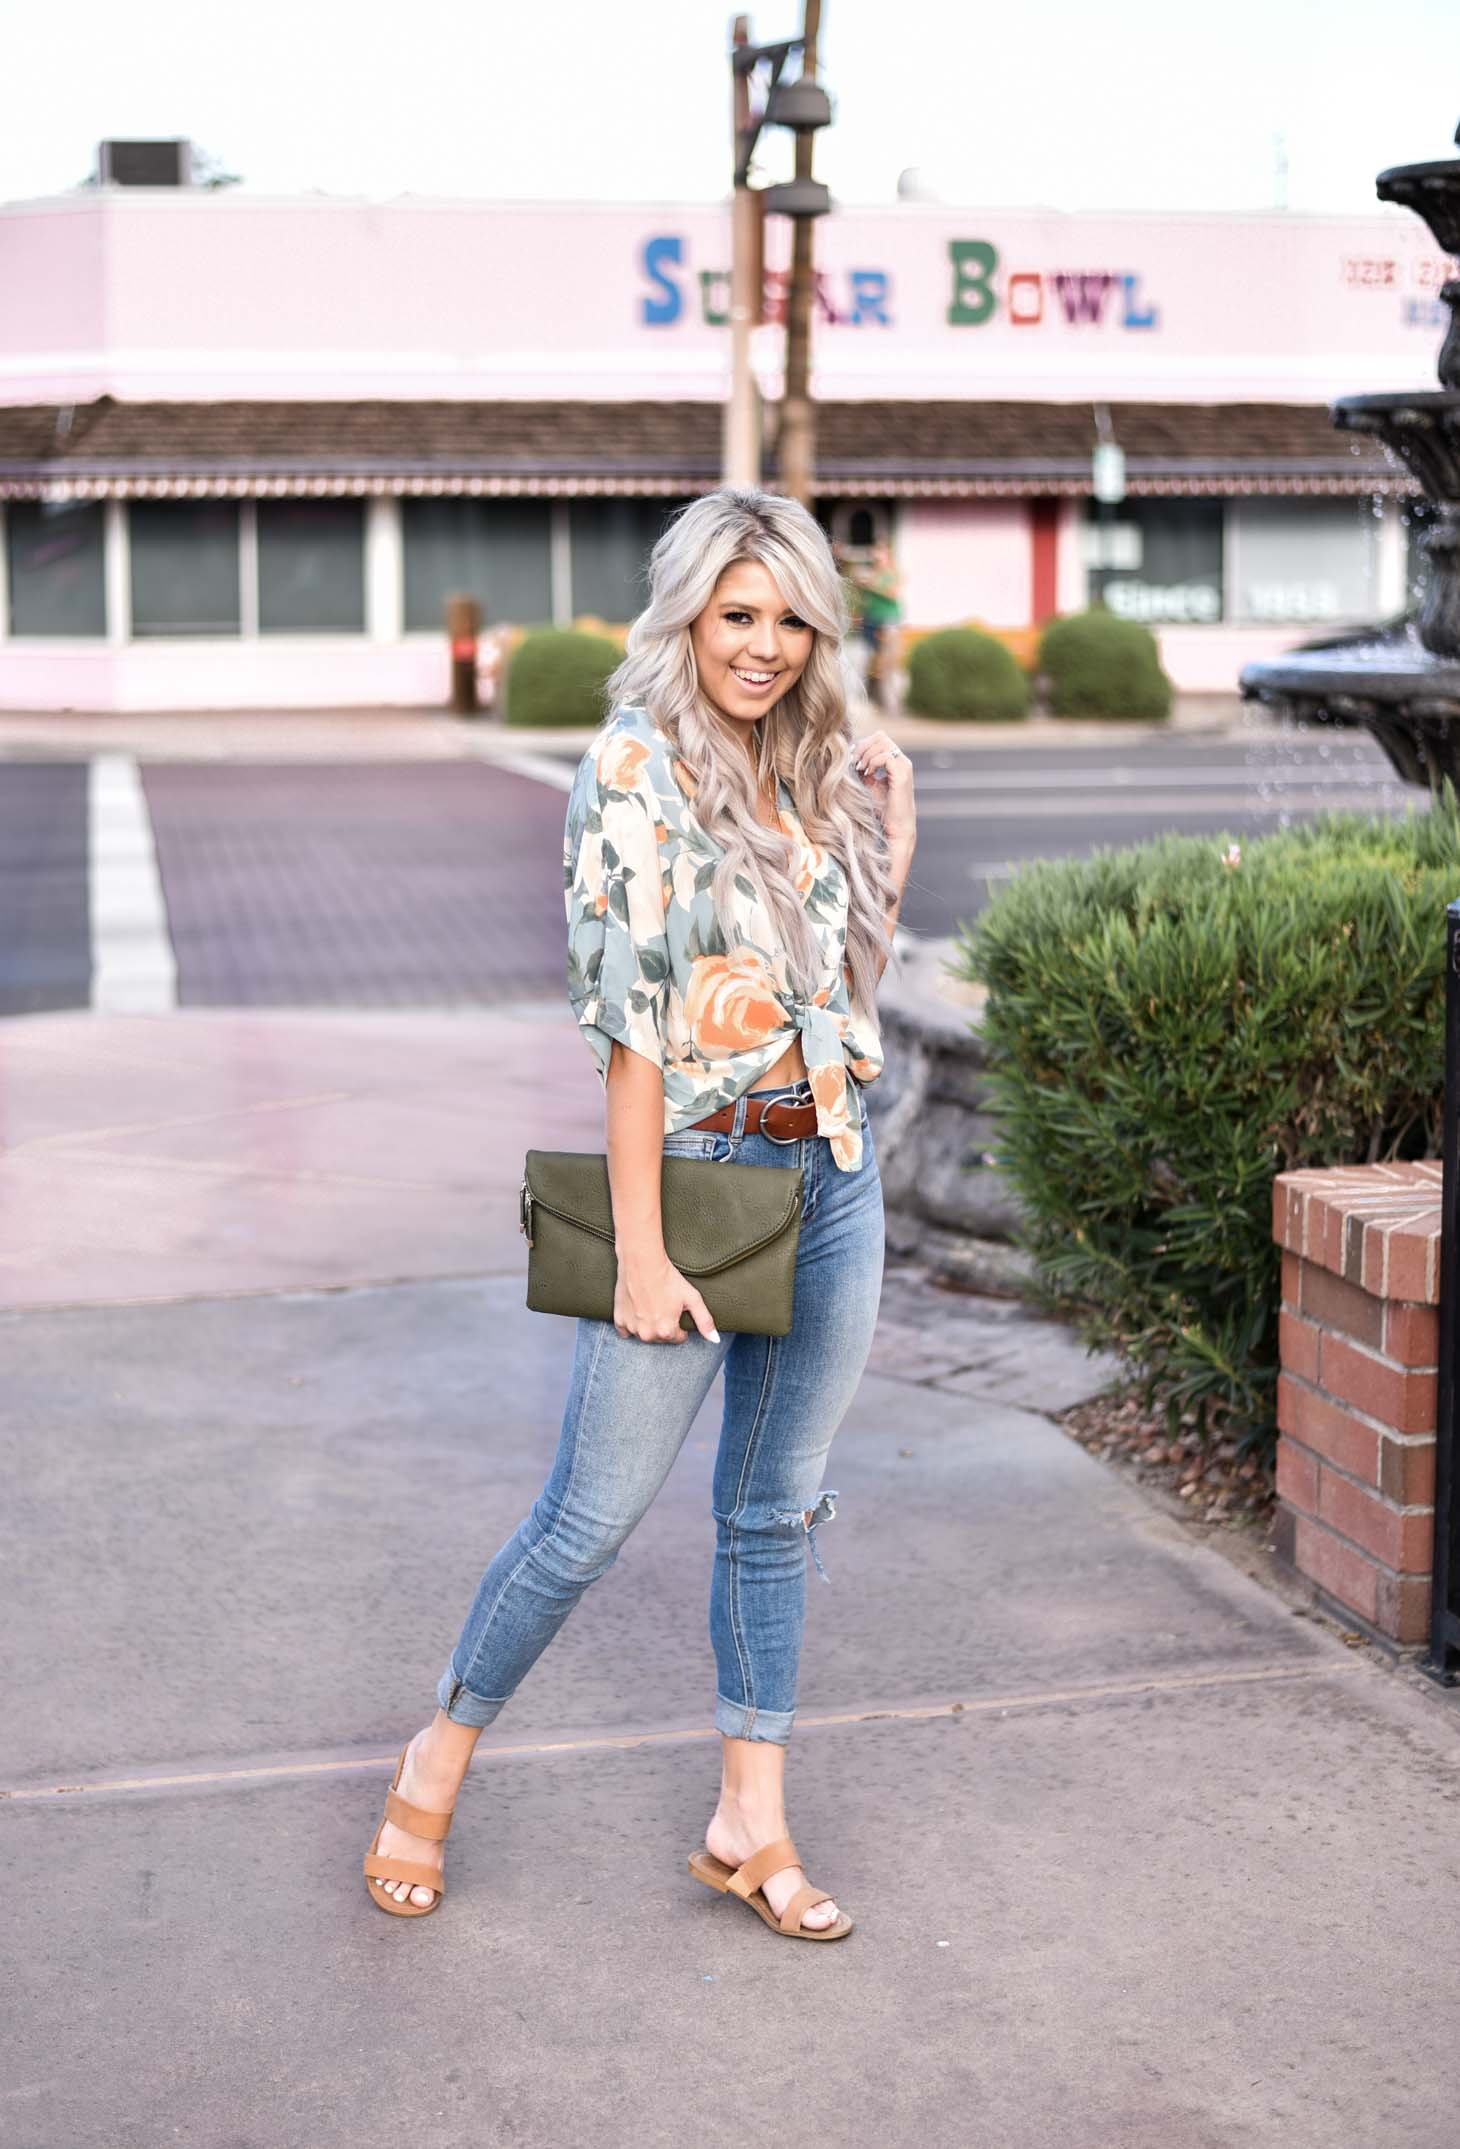 Erin Elizabeth of Wink and a Twirl share the cutest floral tie top from 8.28 Boutique